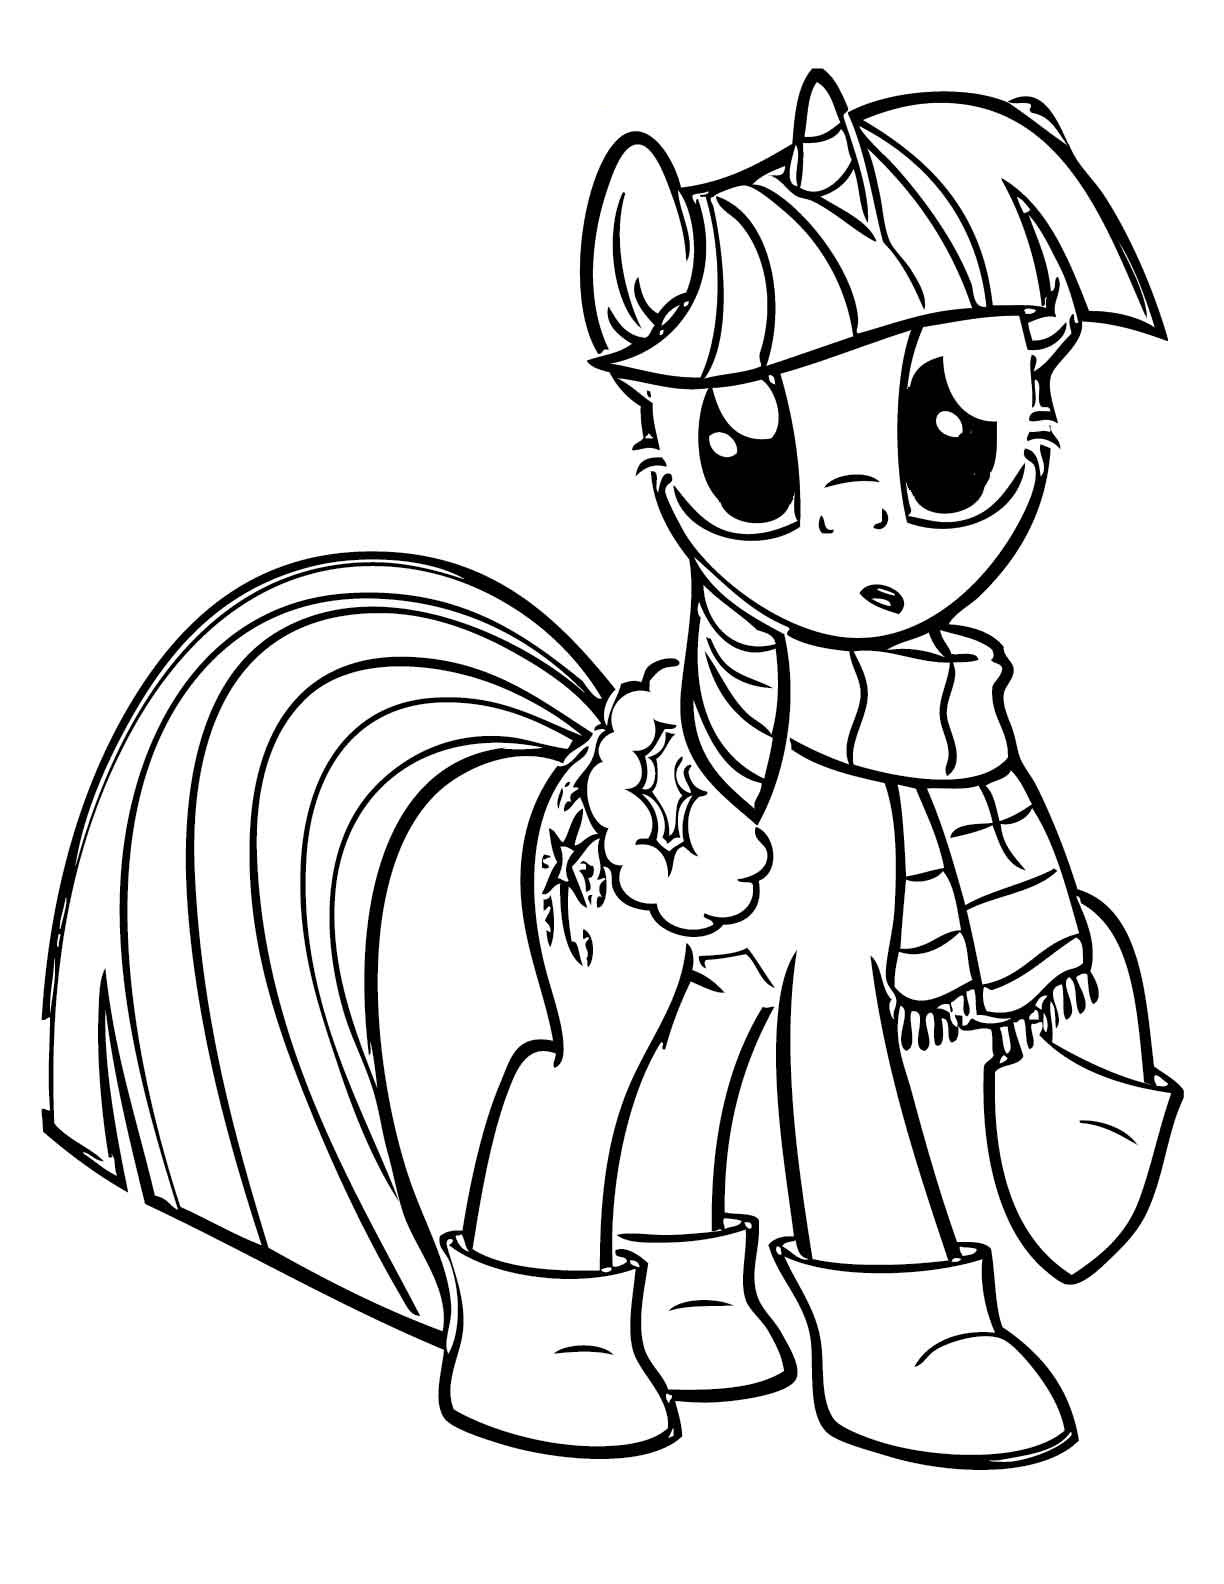 My little pony coloring pages bases - My Little Pony Coloring Pages Bases 62